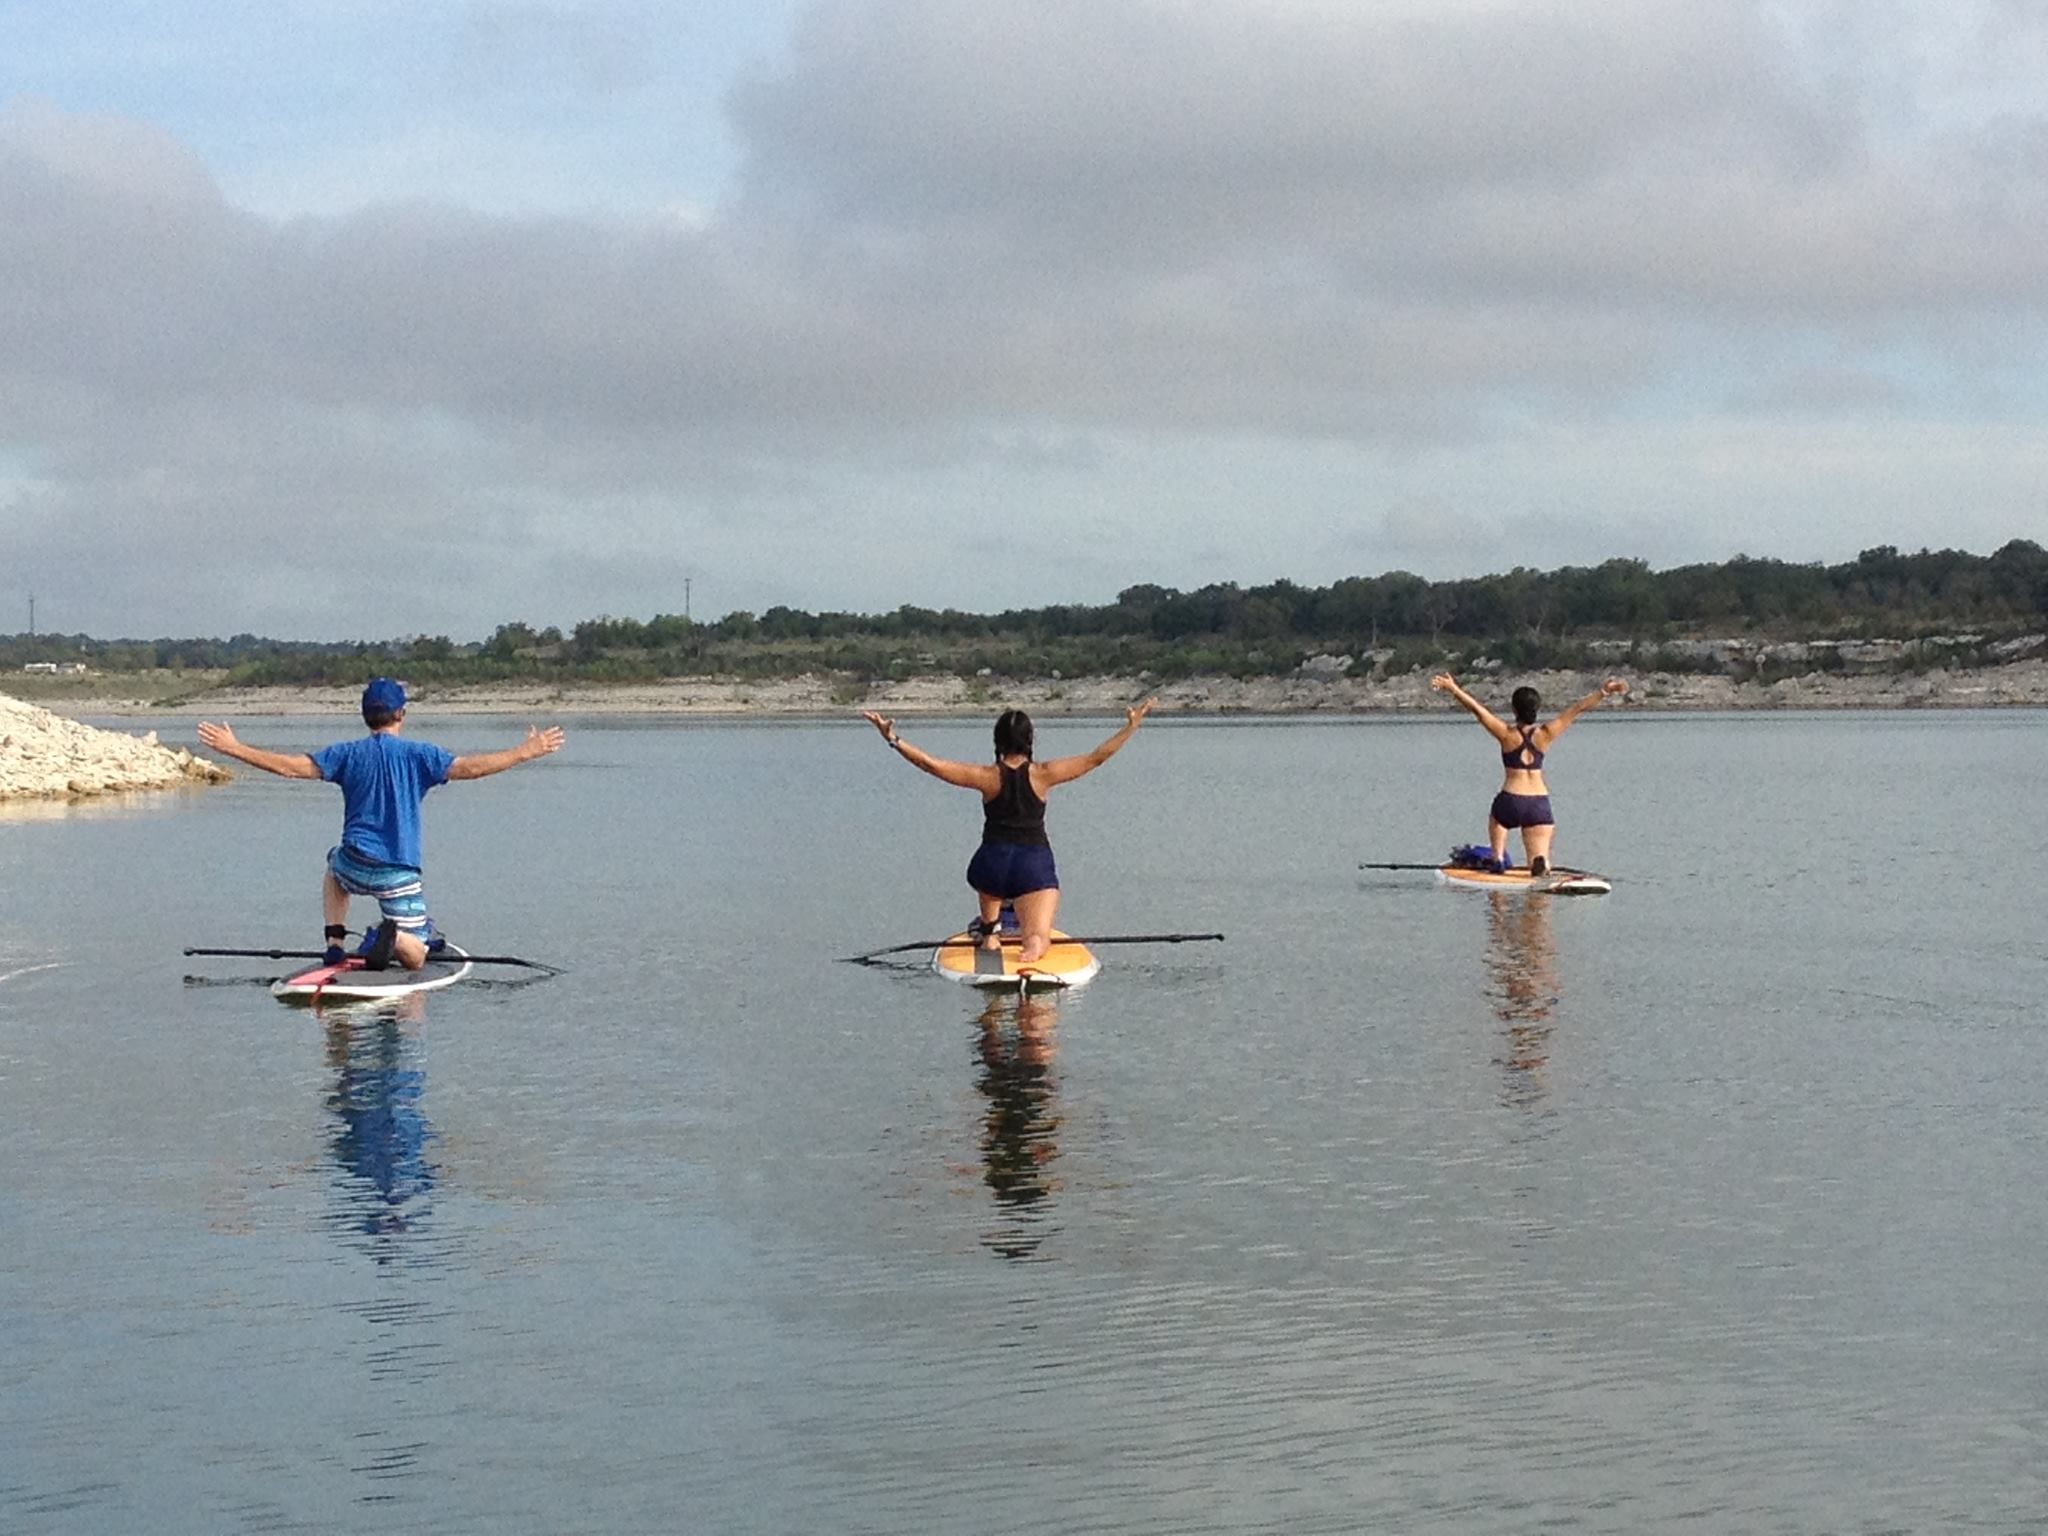 SUP Yoga for 40th Birthday